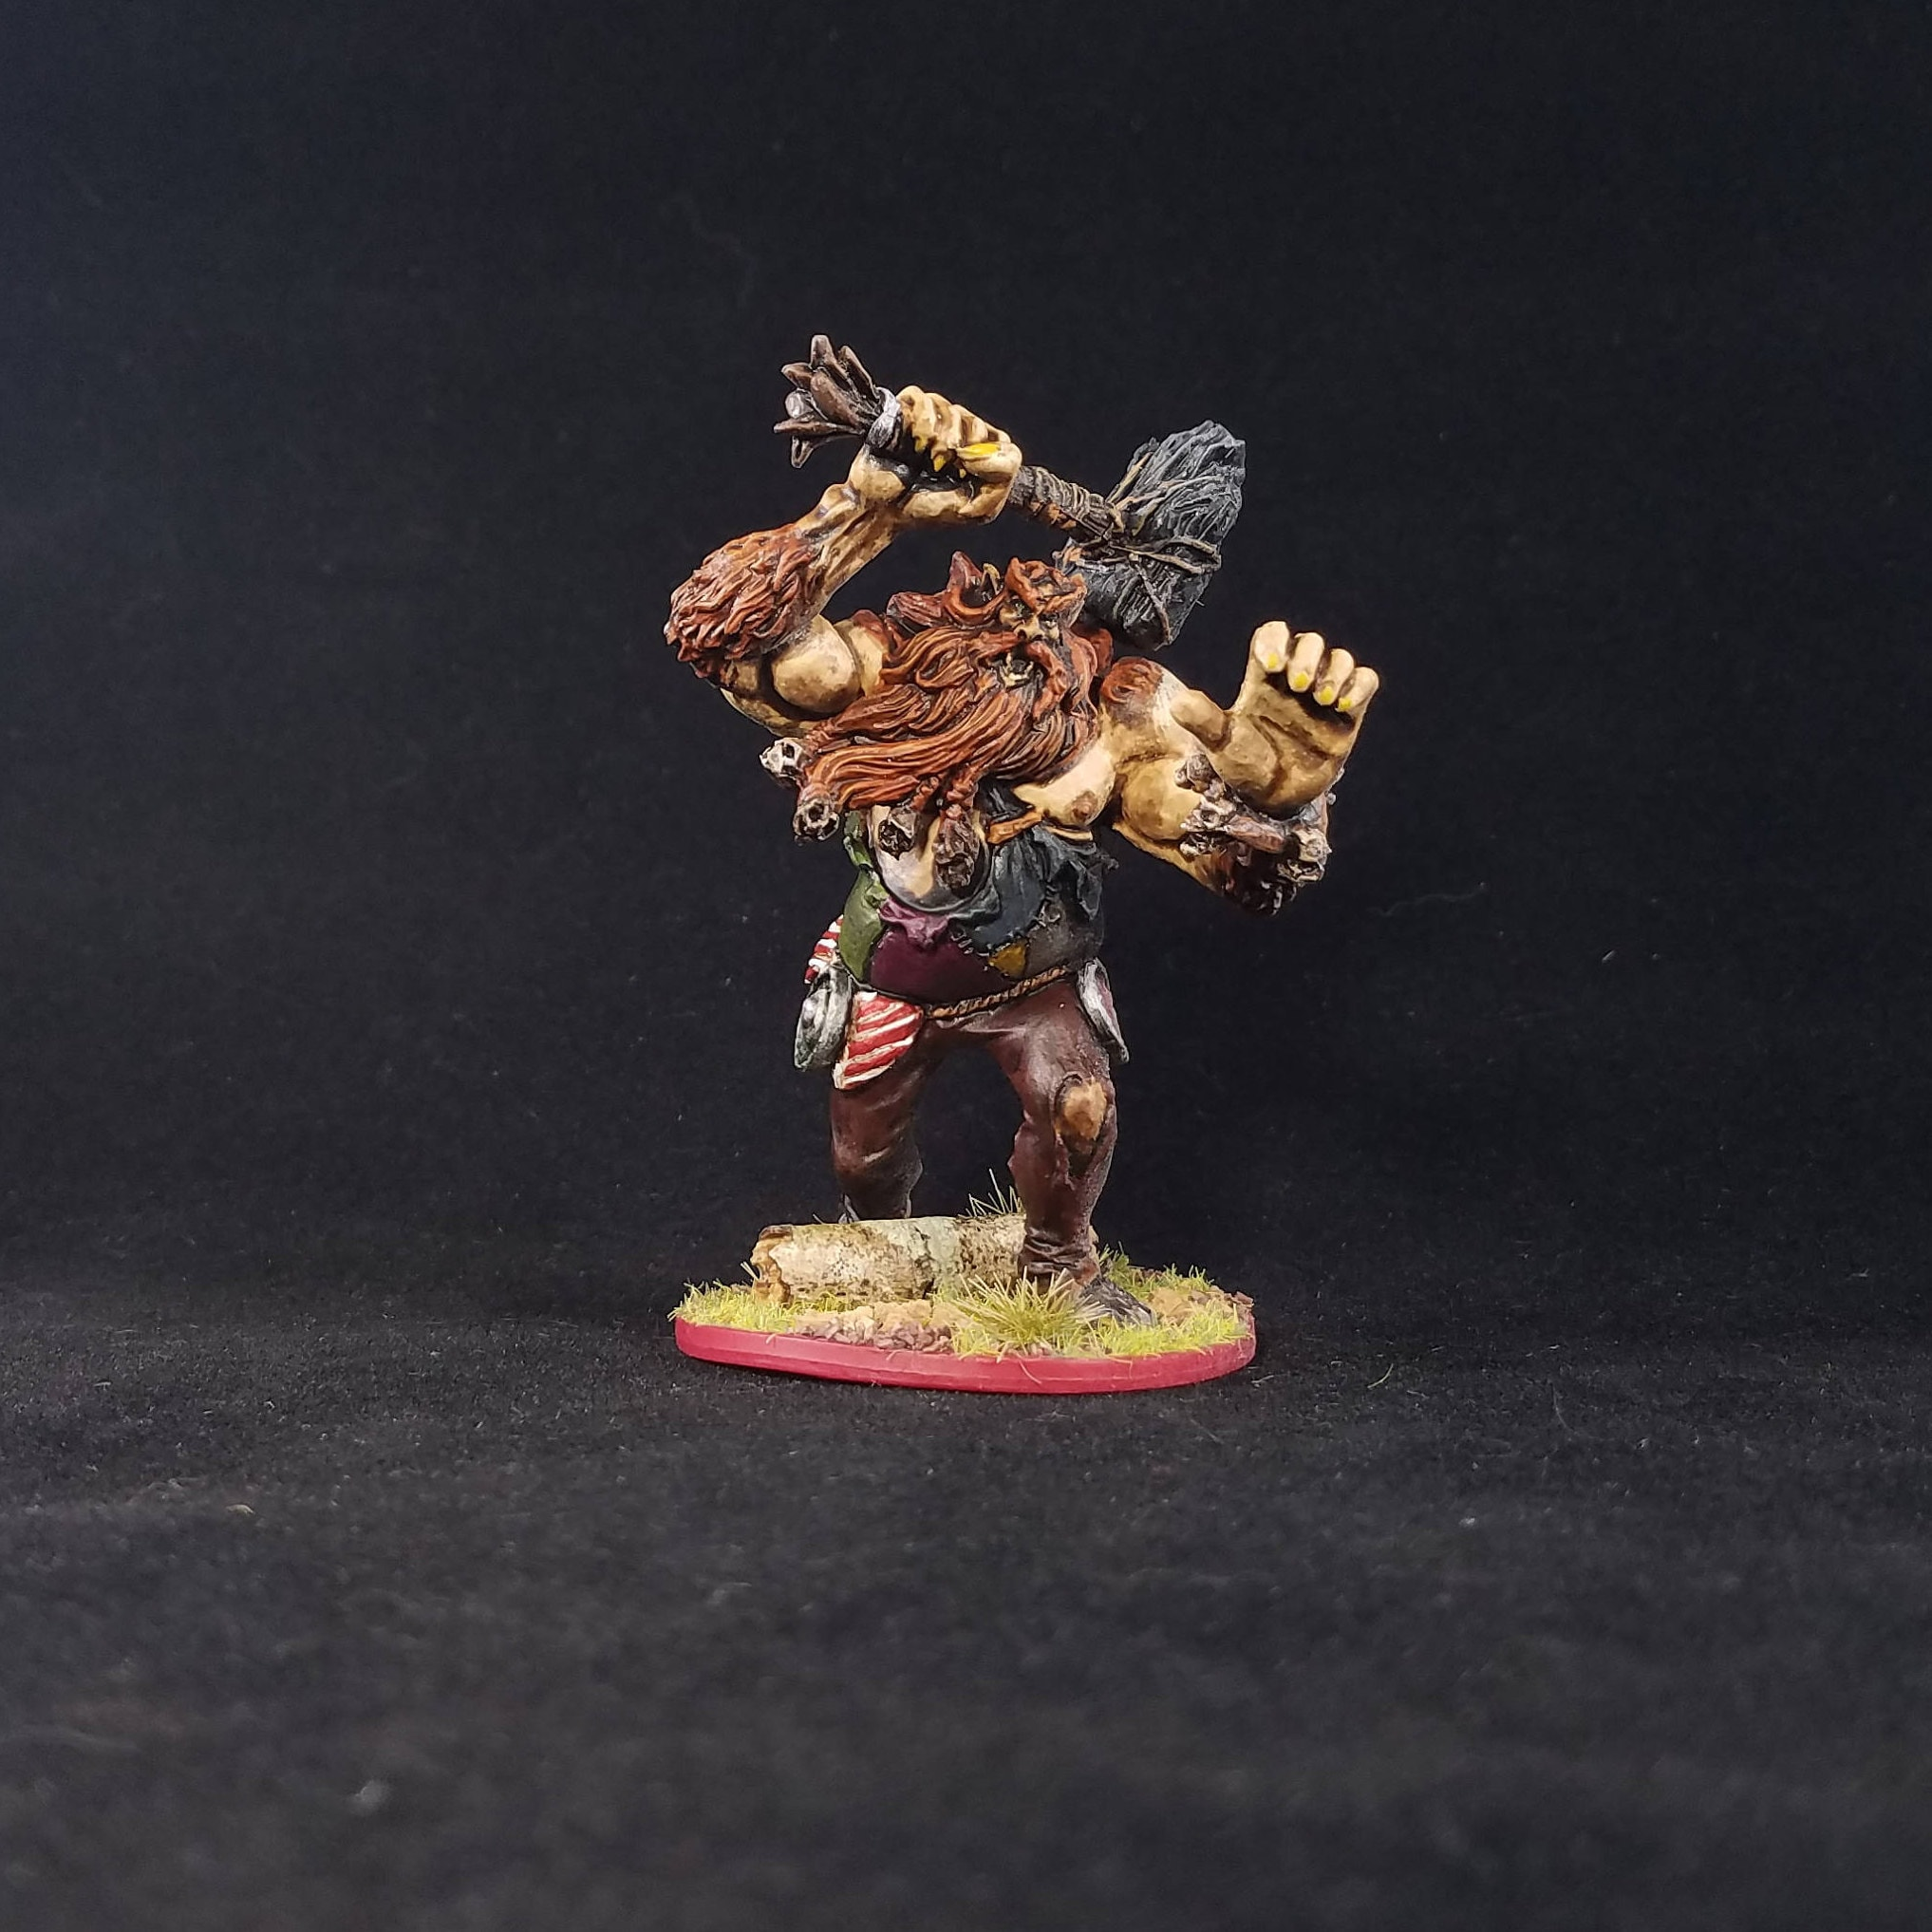 Firbolg Druid Painted Mini From Descent: Journeys In The